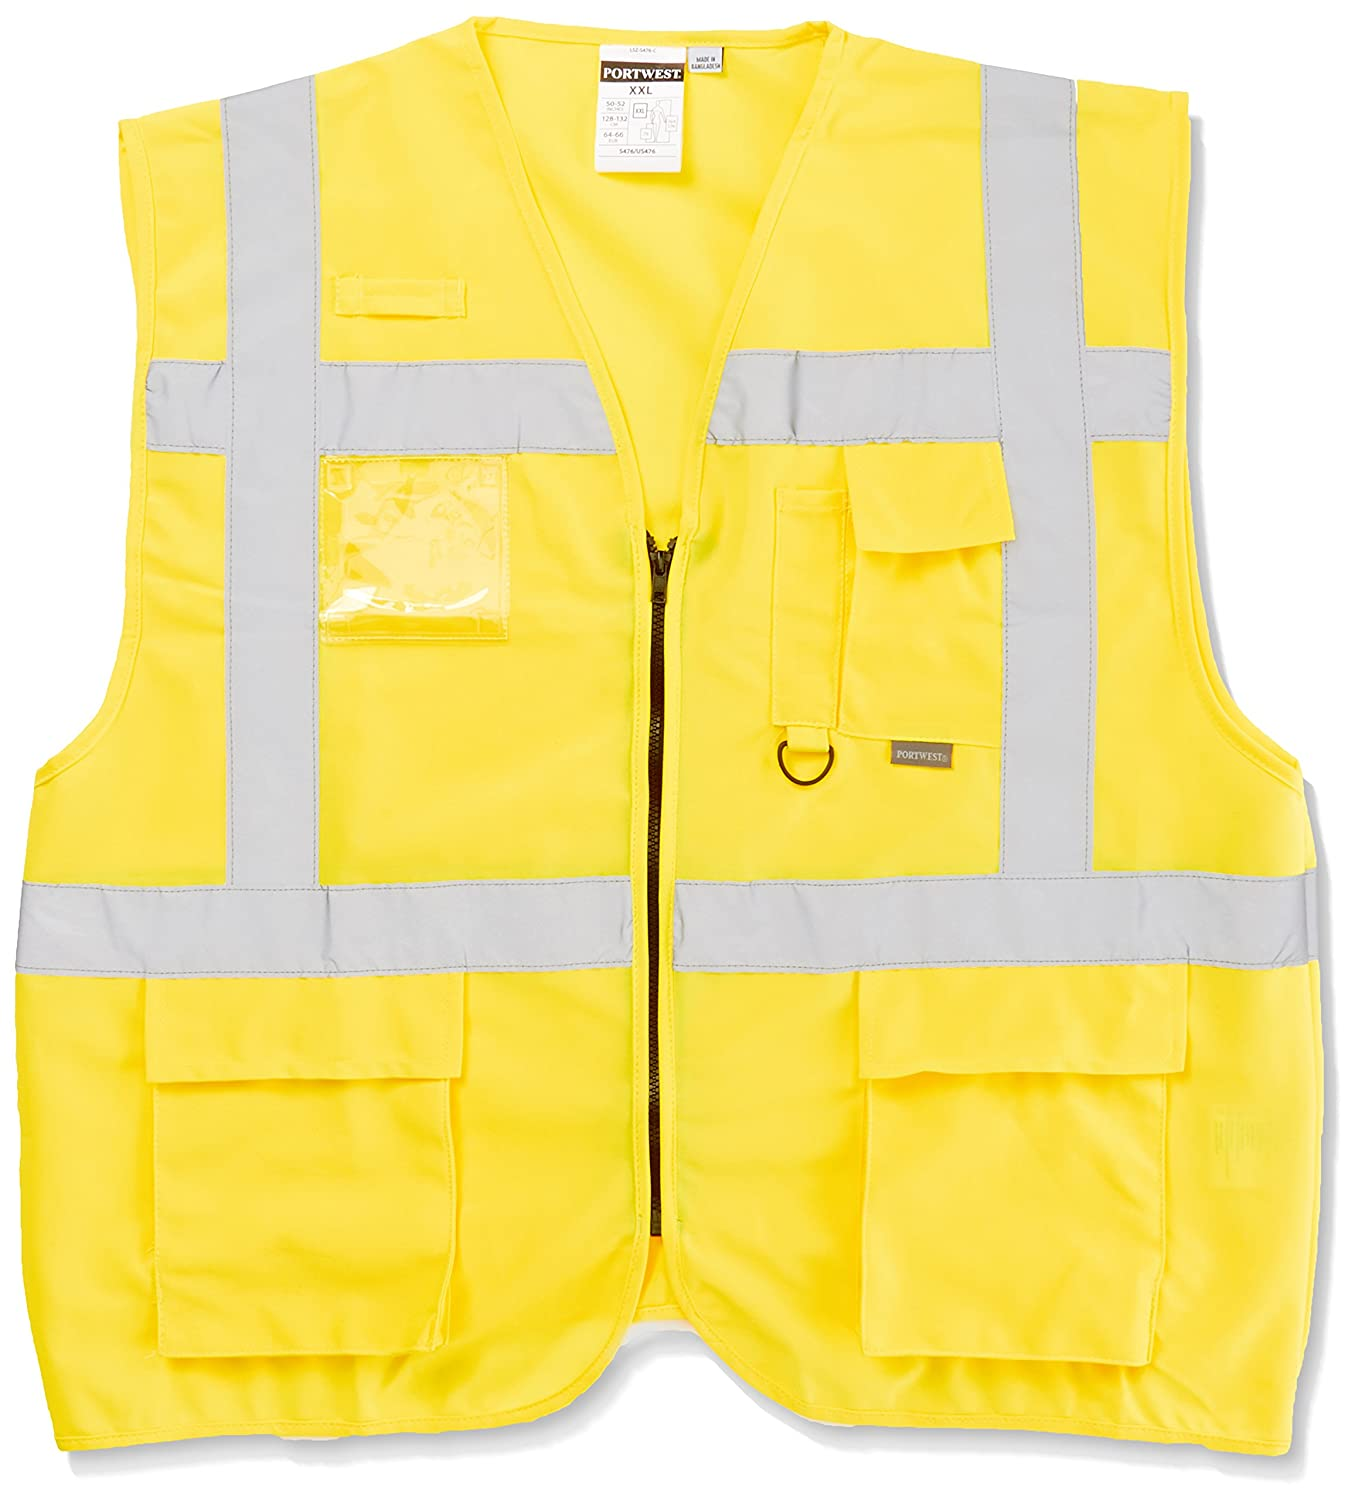 Portwest Men's S476YERXXL Hi-Vis Vest, Yellow, 2X-Large US476YERXXL